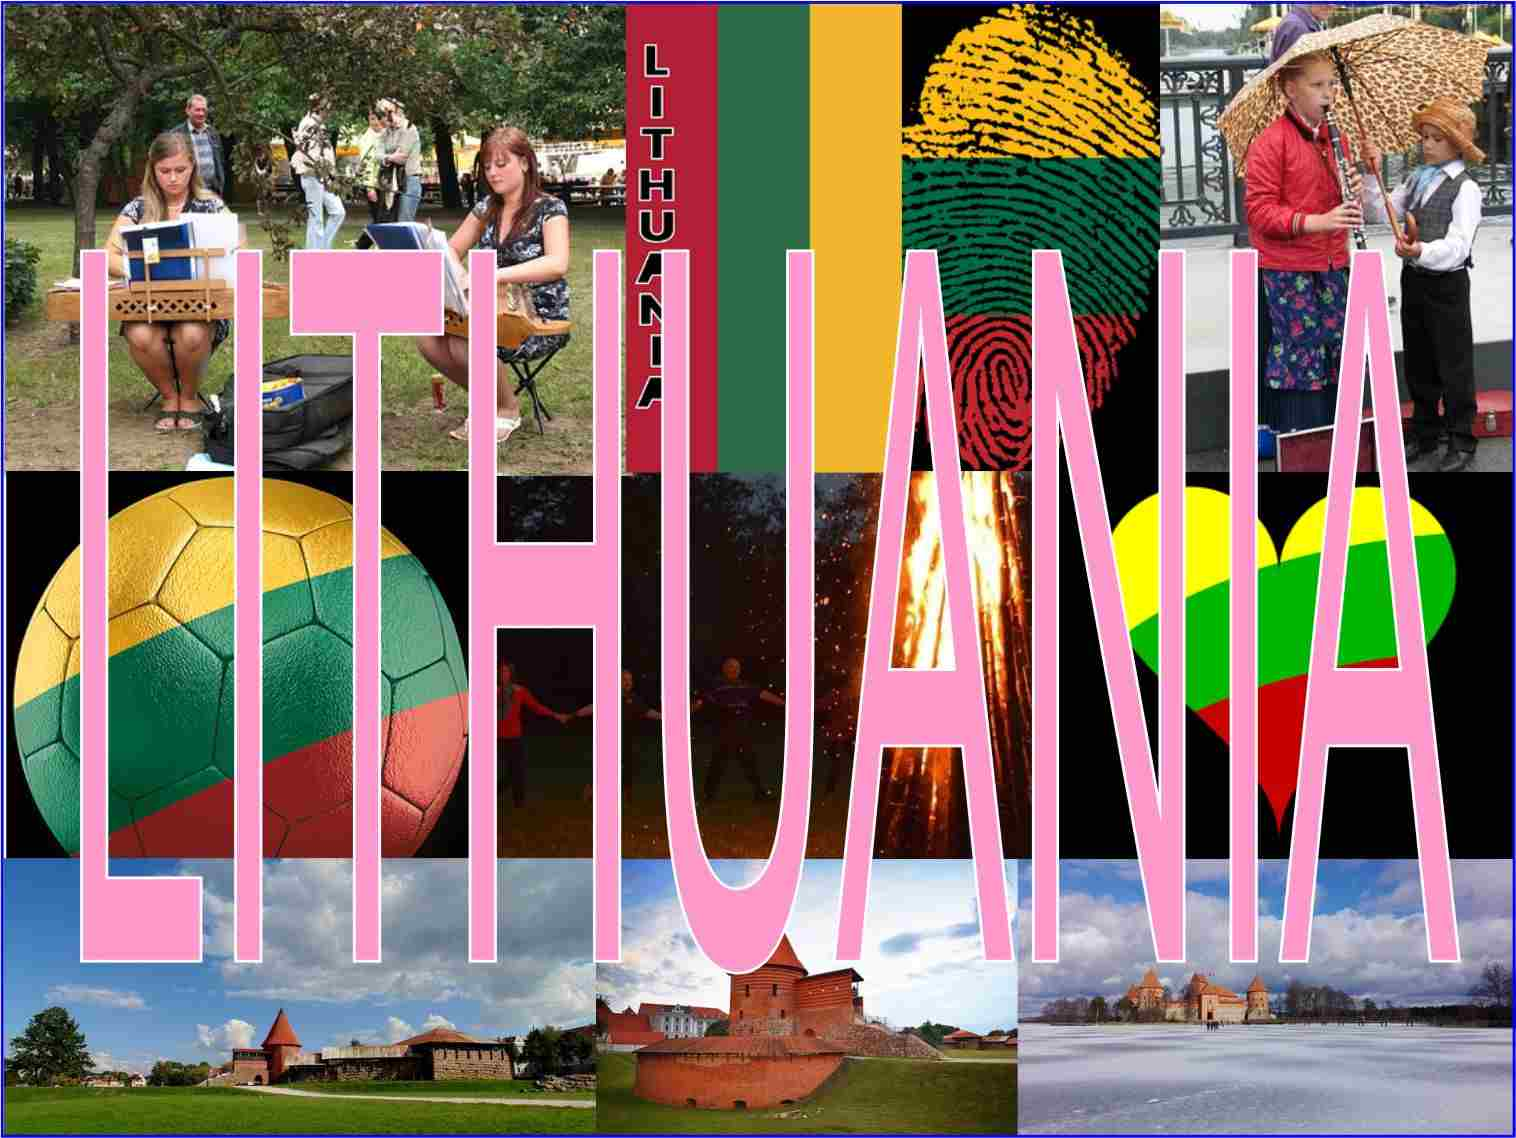 Lithuania: what to see in different cities, what are they